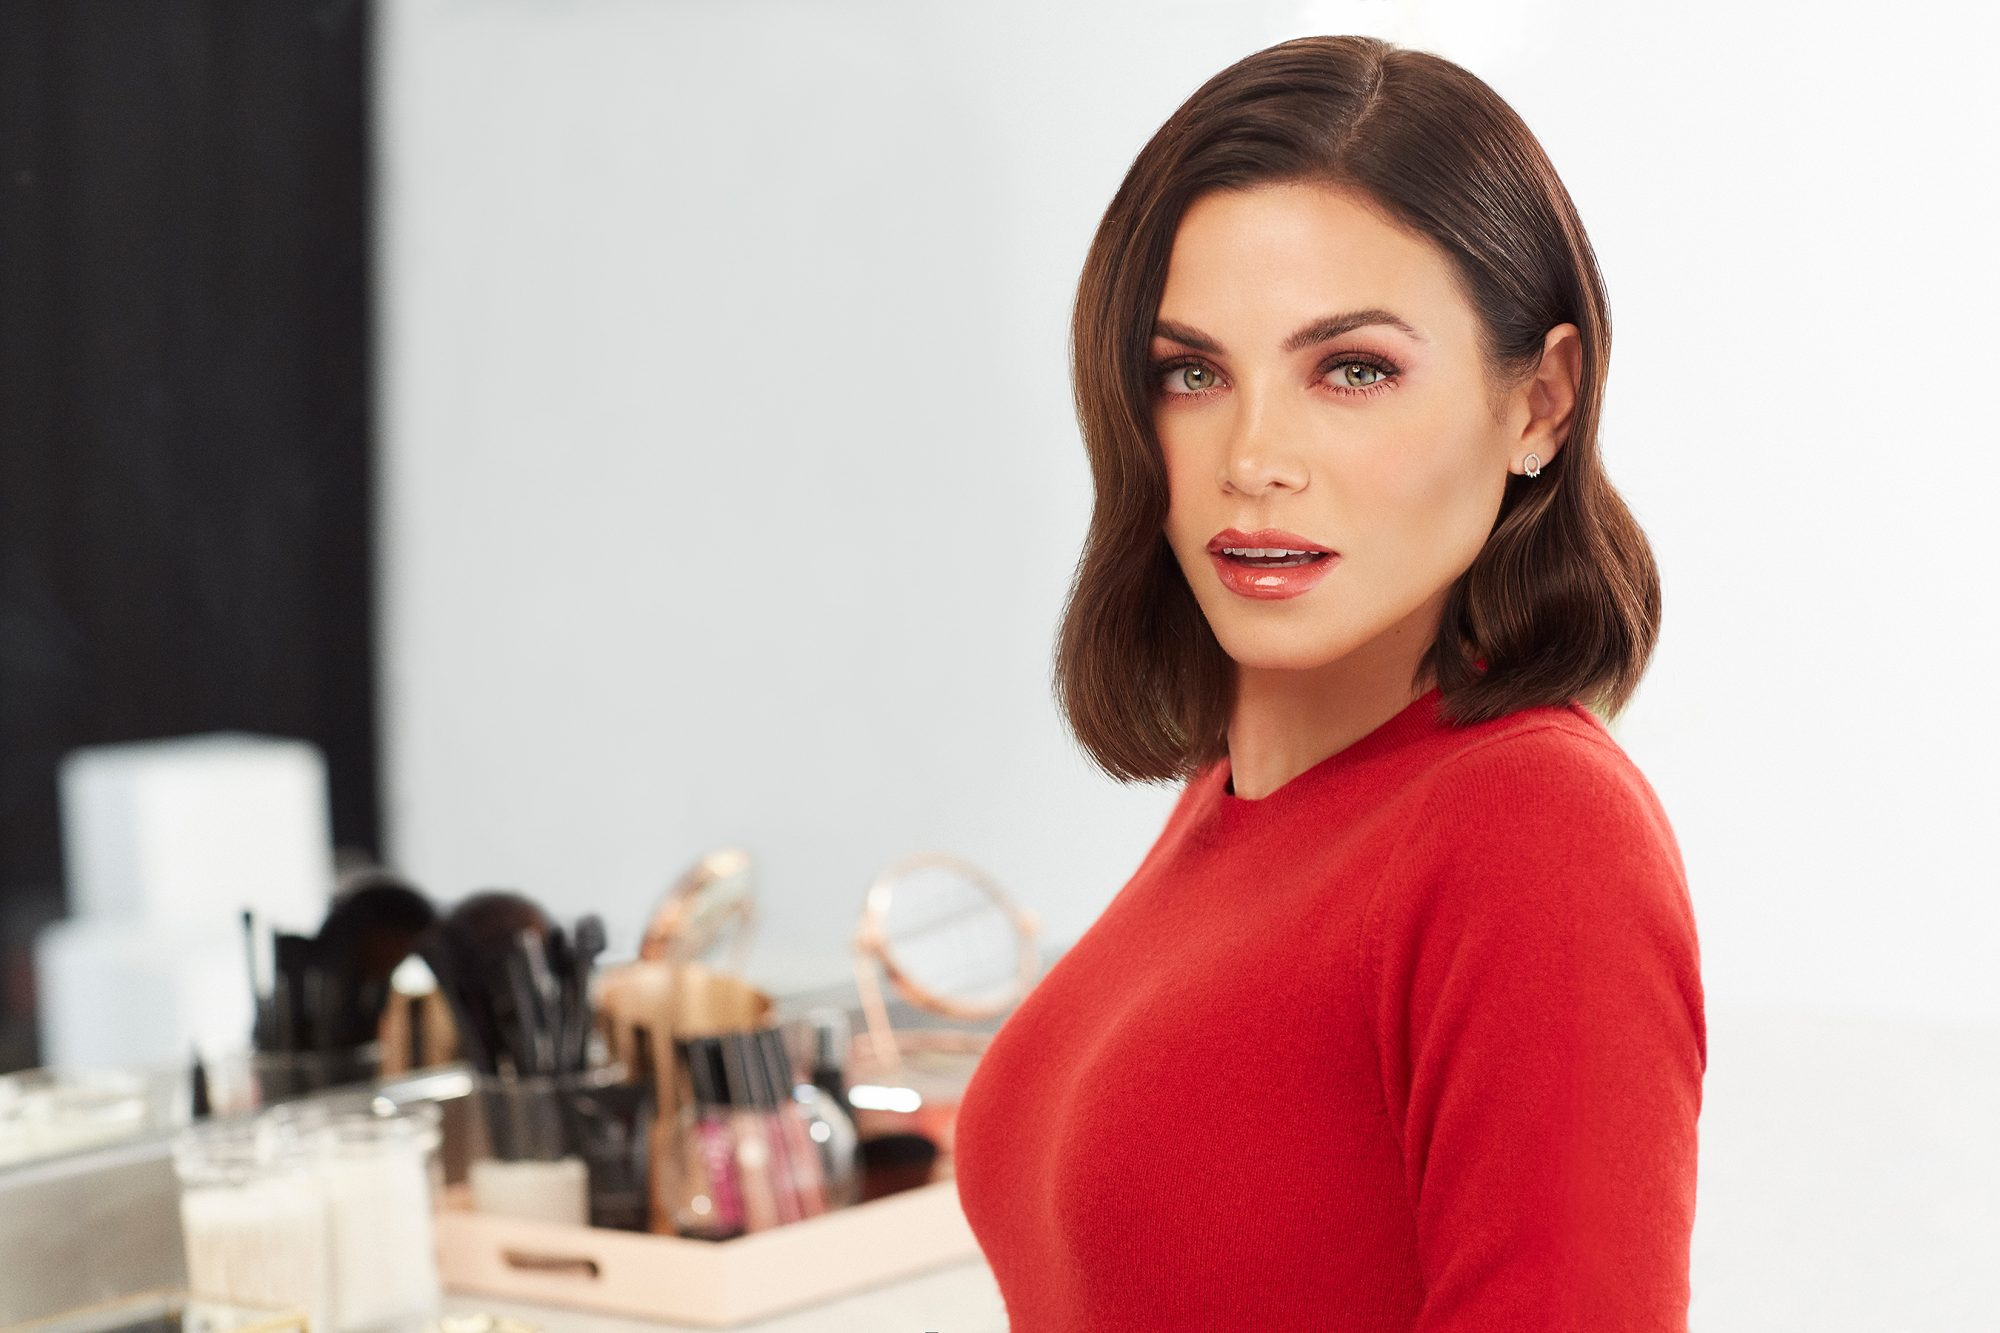 Jenna Dewan Is the Face of Savvy Minerals Beauty Brand